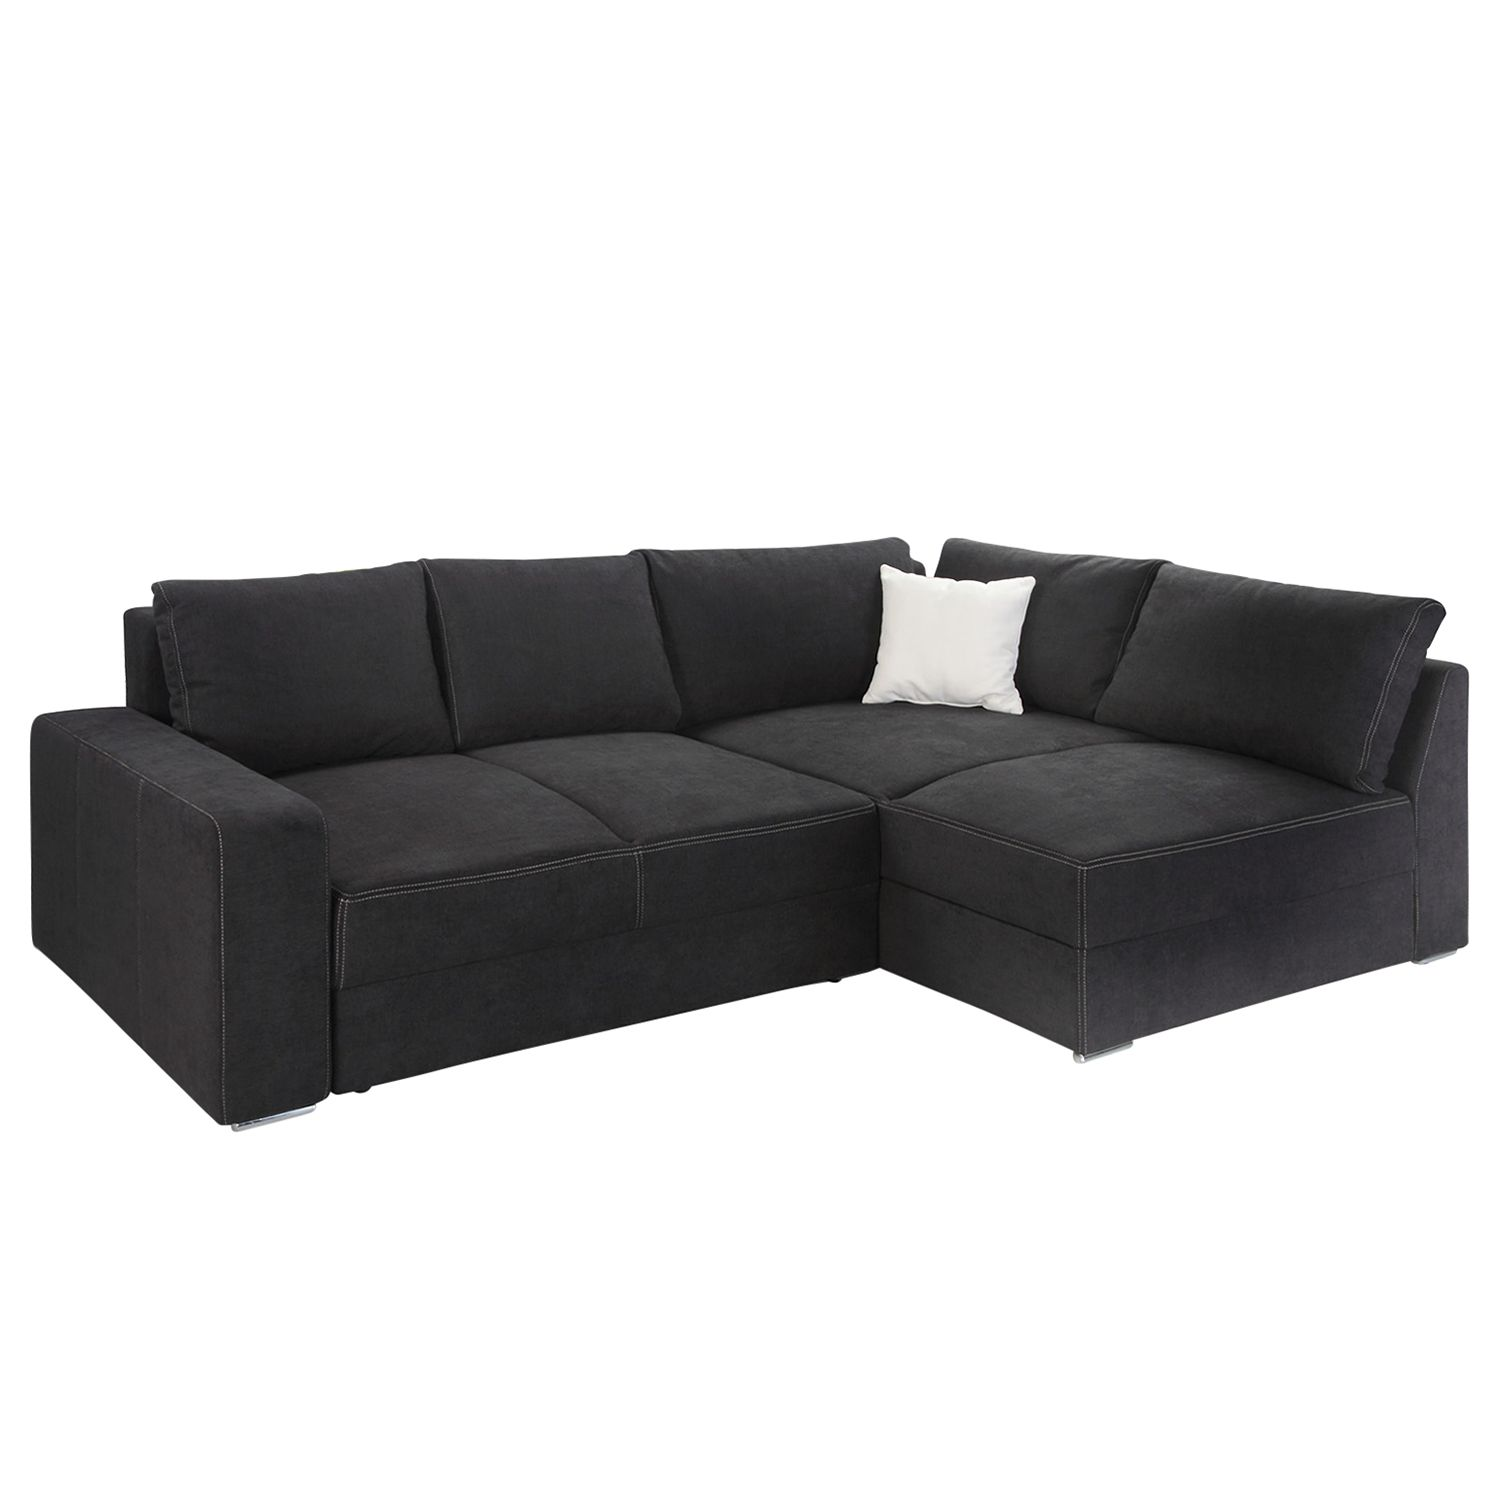 sofas f r kleine r ume preisvergleiche. Black Bedroom Furniture Sets. Home Design Ideas